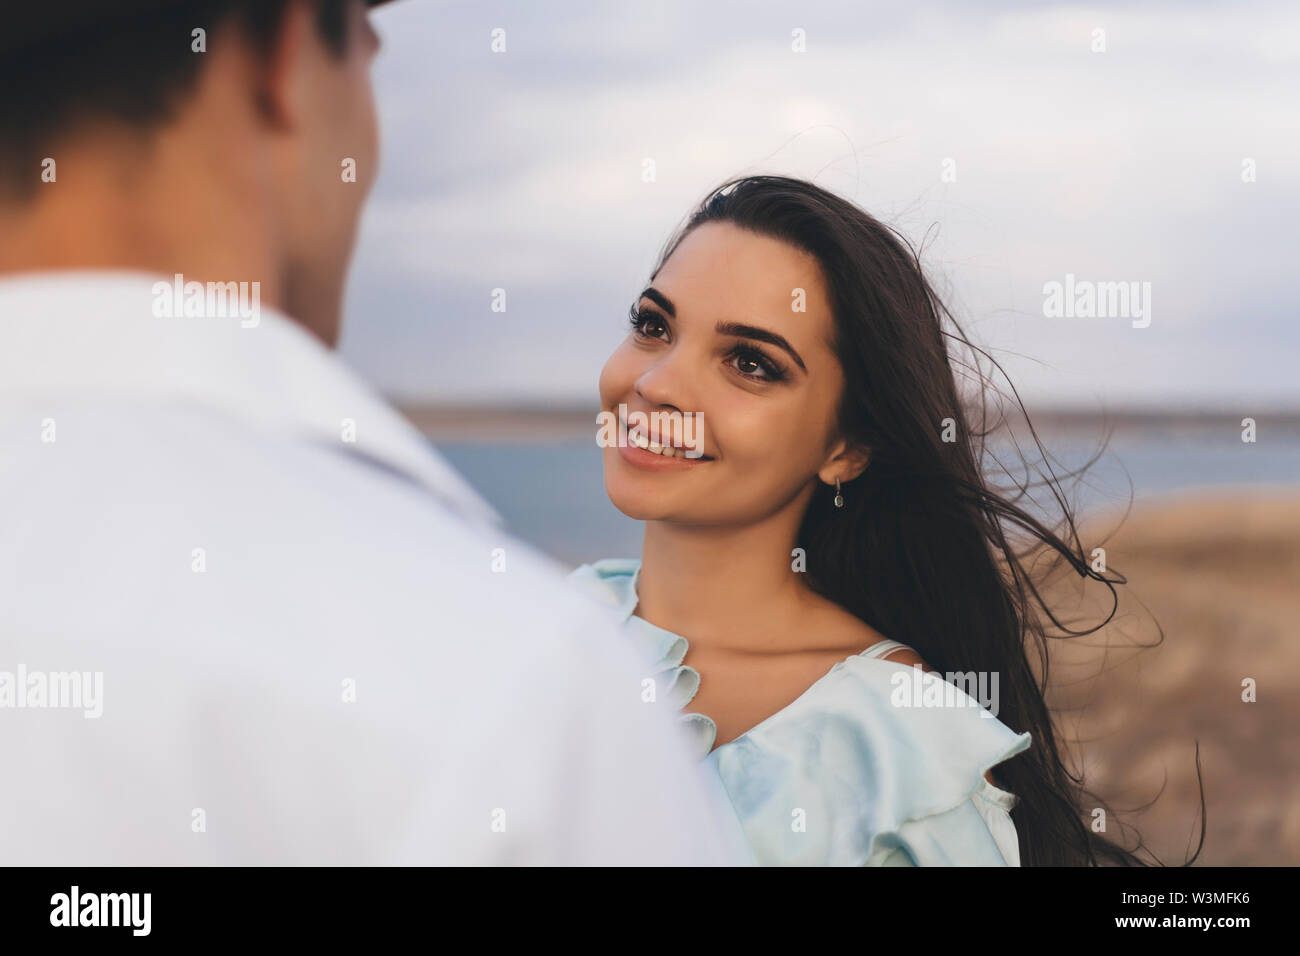 Smiling young woman looking at her partner - Stock Image